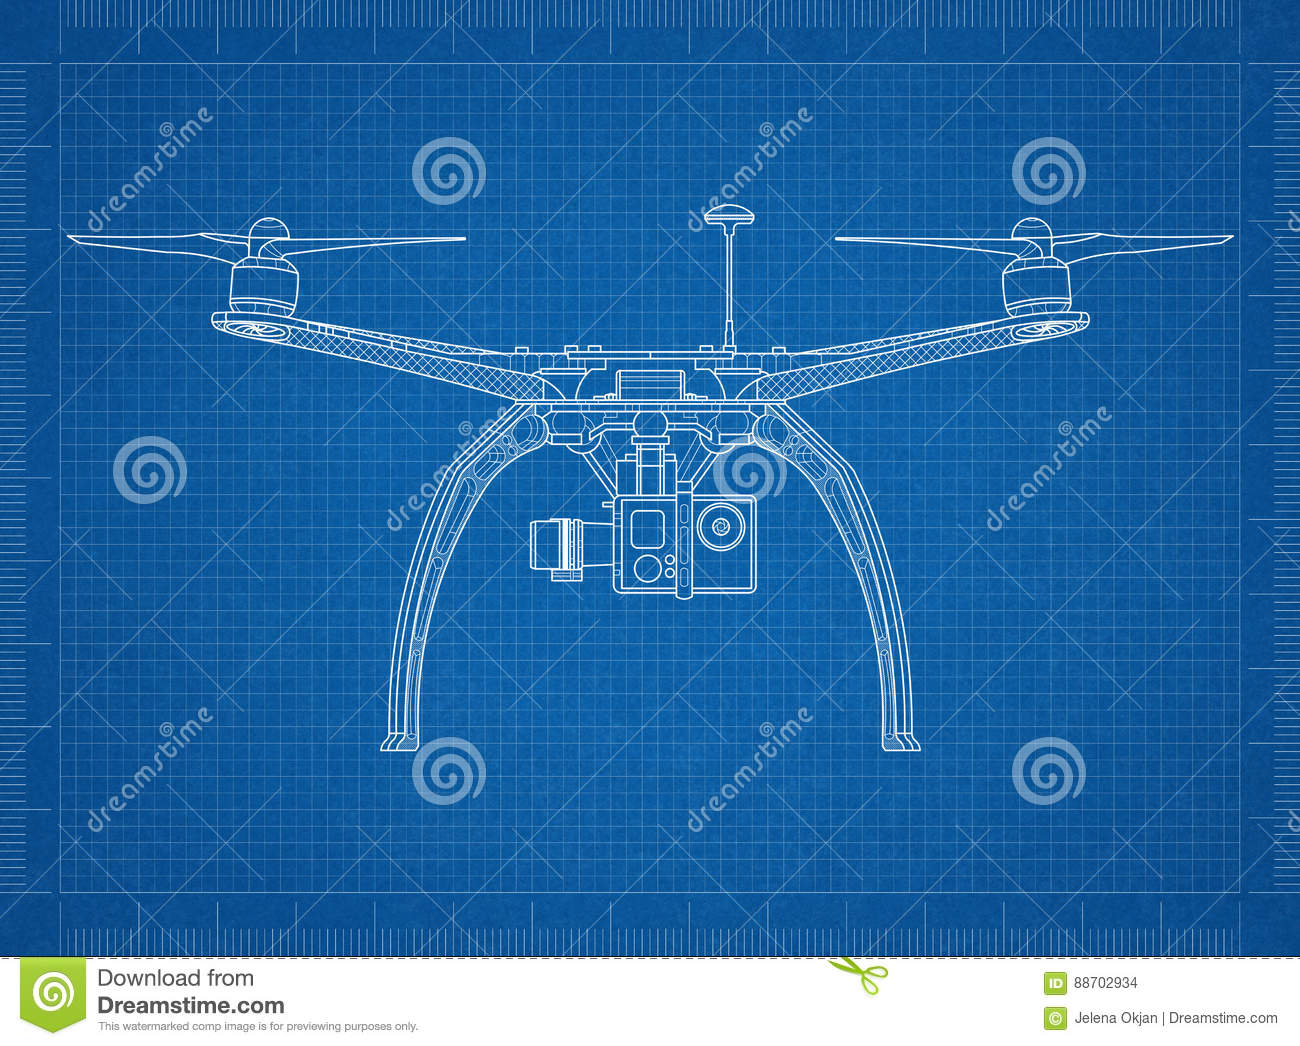 RC Quadcopter Drone Blueprint